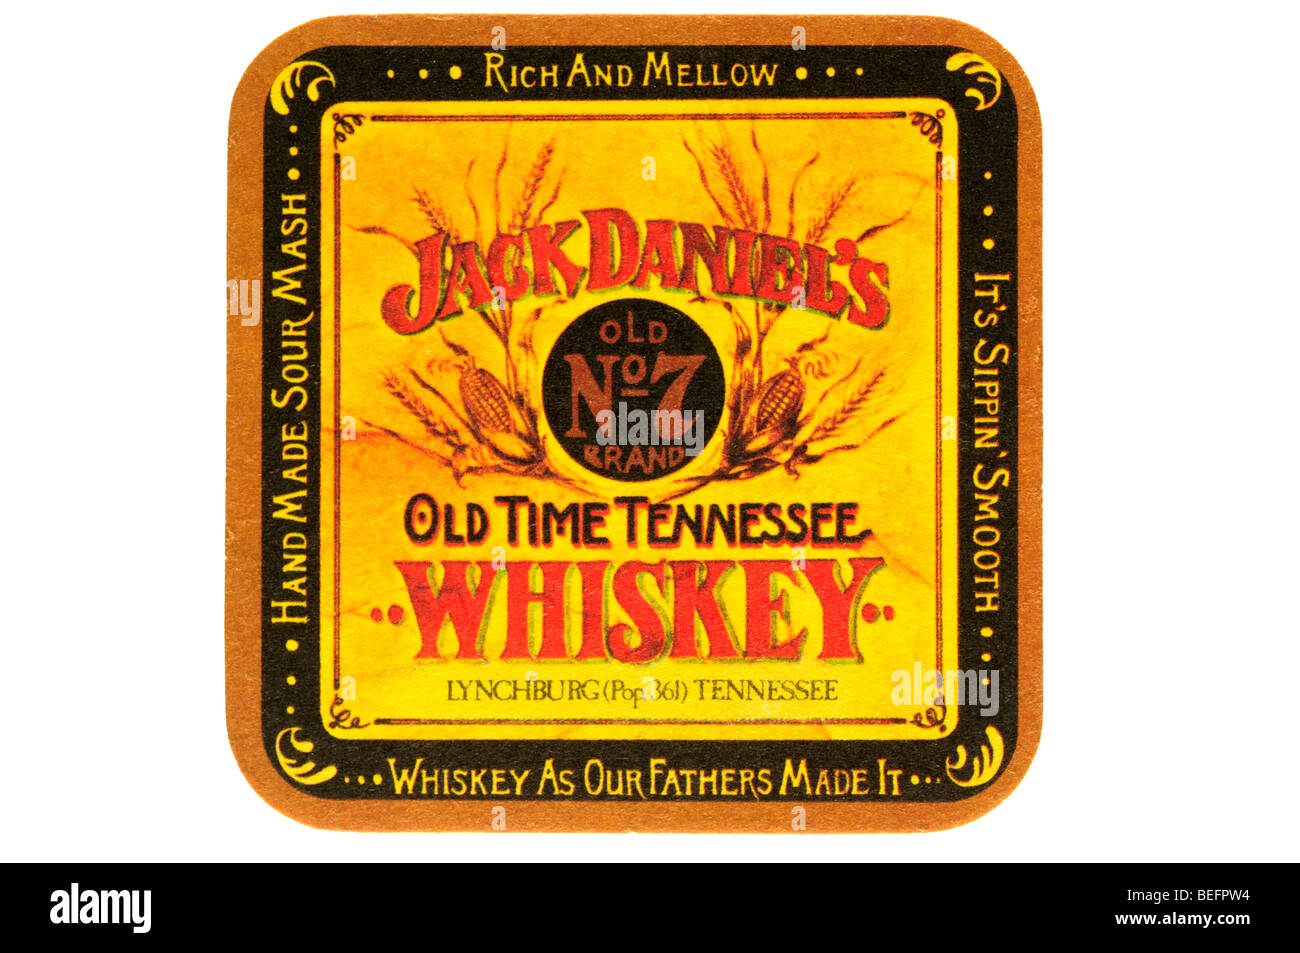 jack daniels old no 7 brand old time tennessee whiskey lynchburg pop 361 tennessee whiskey as our fathers made it - Stock Image